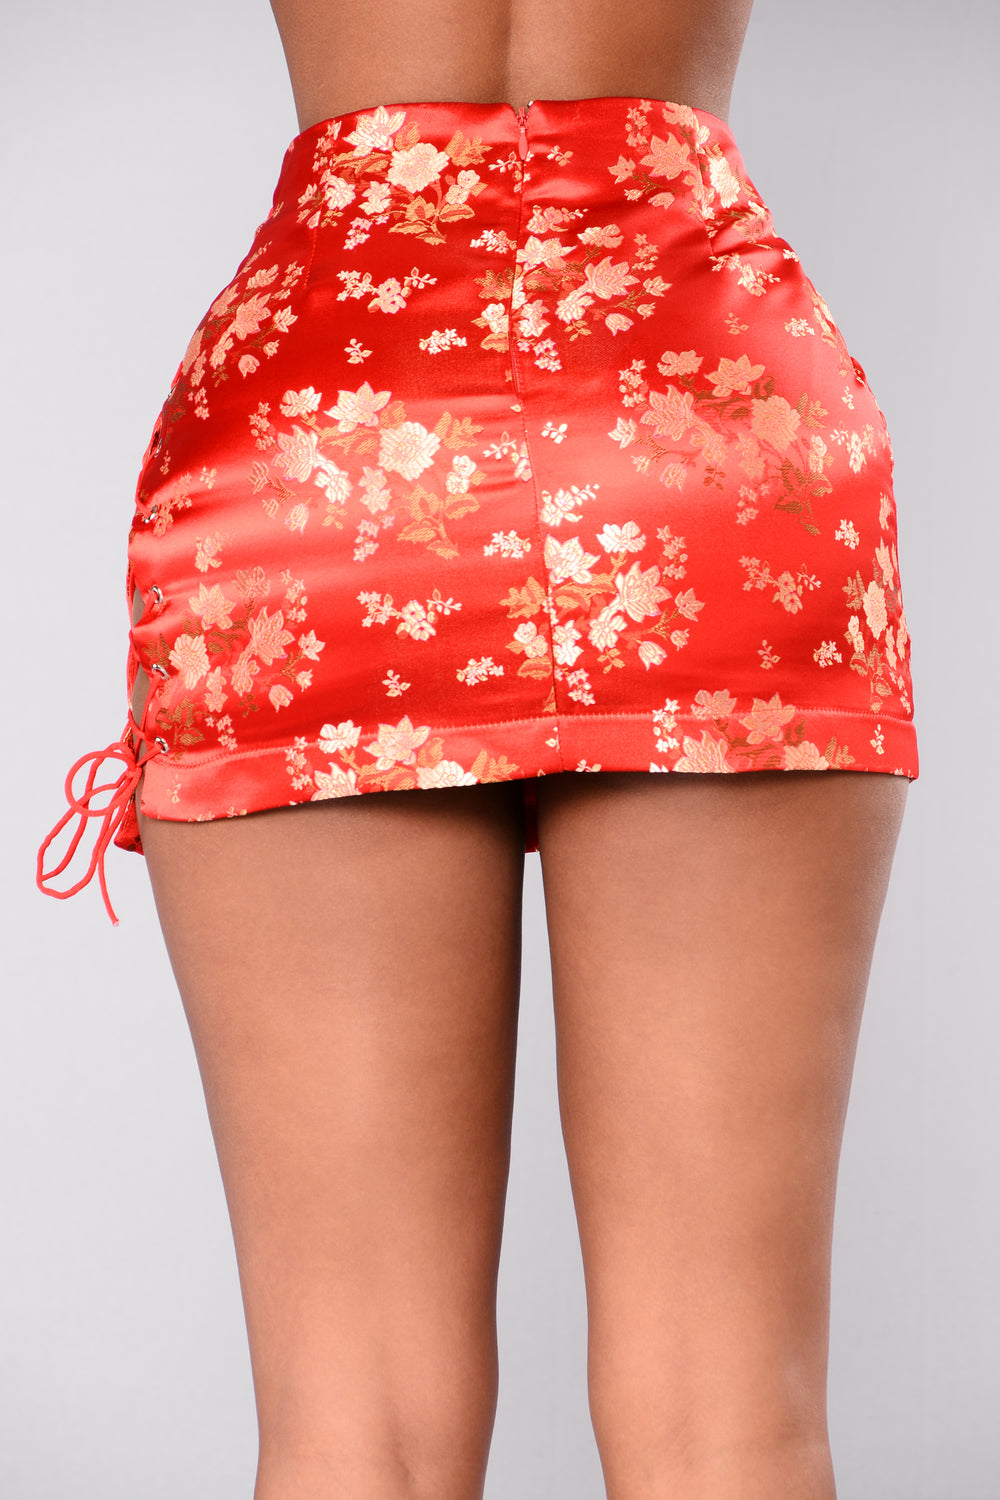 Midnight Chinatown Satin Skirt - Red